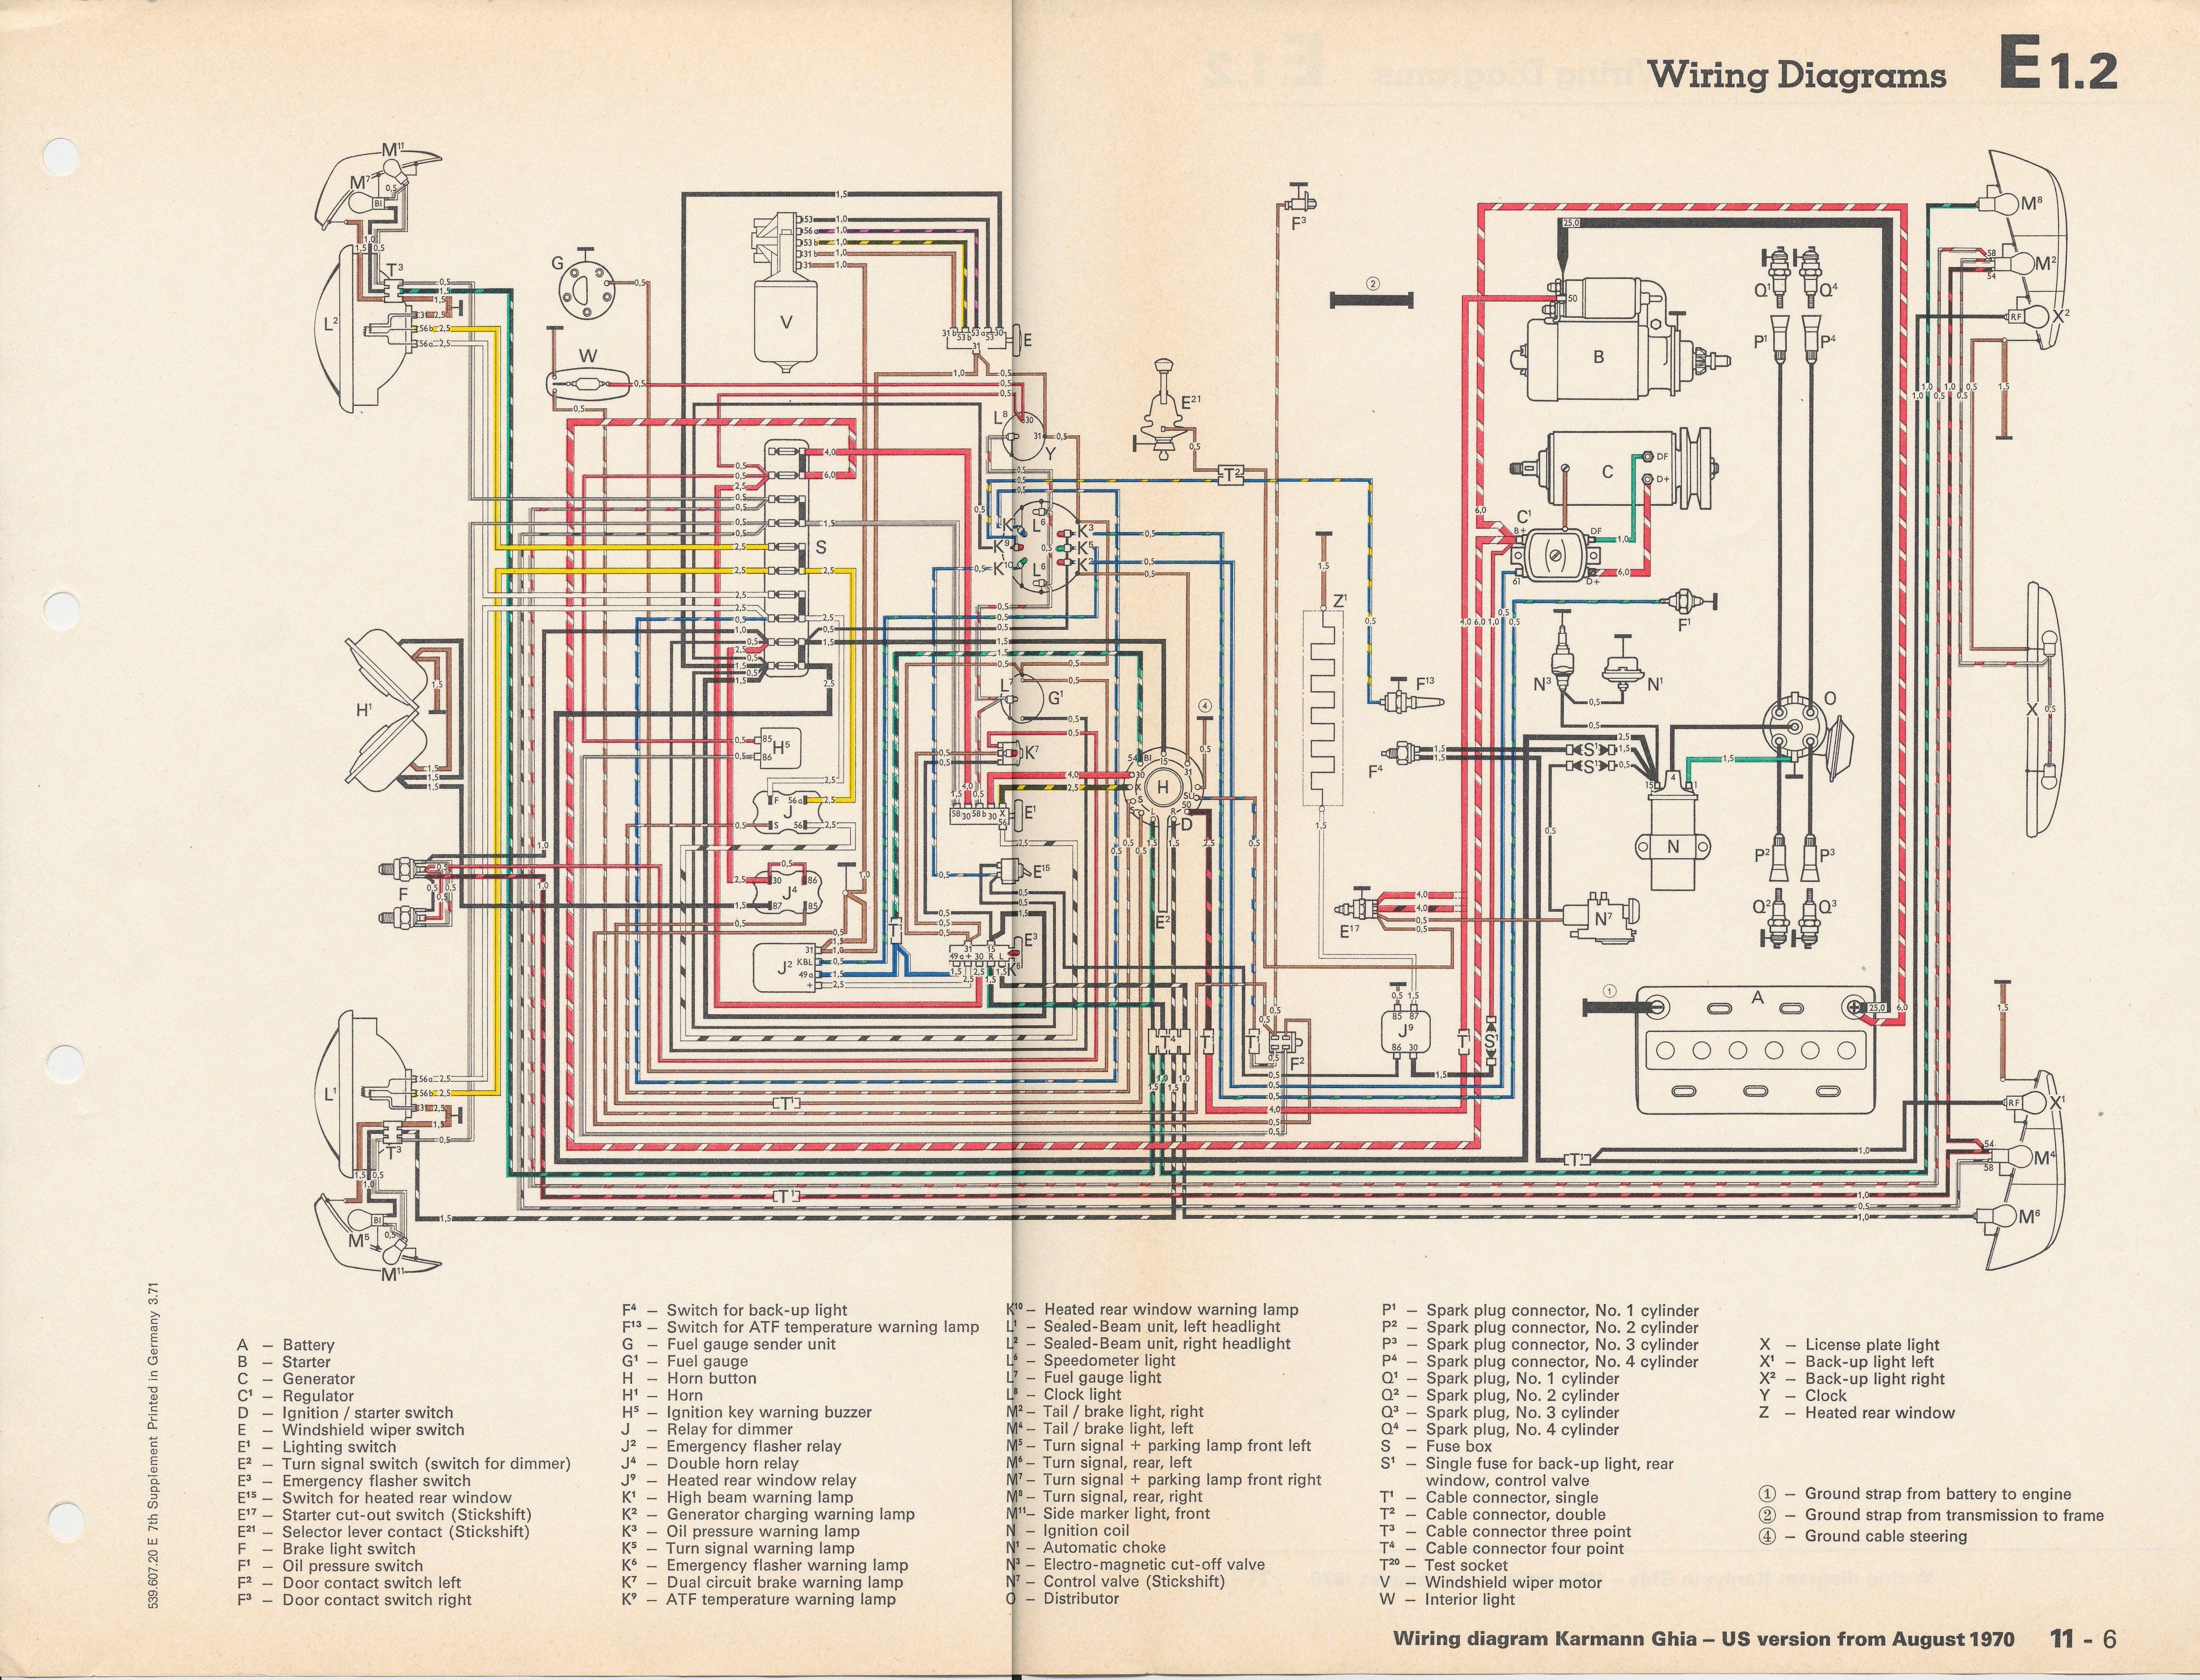 wiring diagram for 1971 vw bus the wiring diagram vw turn signal wiring diagram nilza wiring diagram